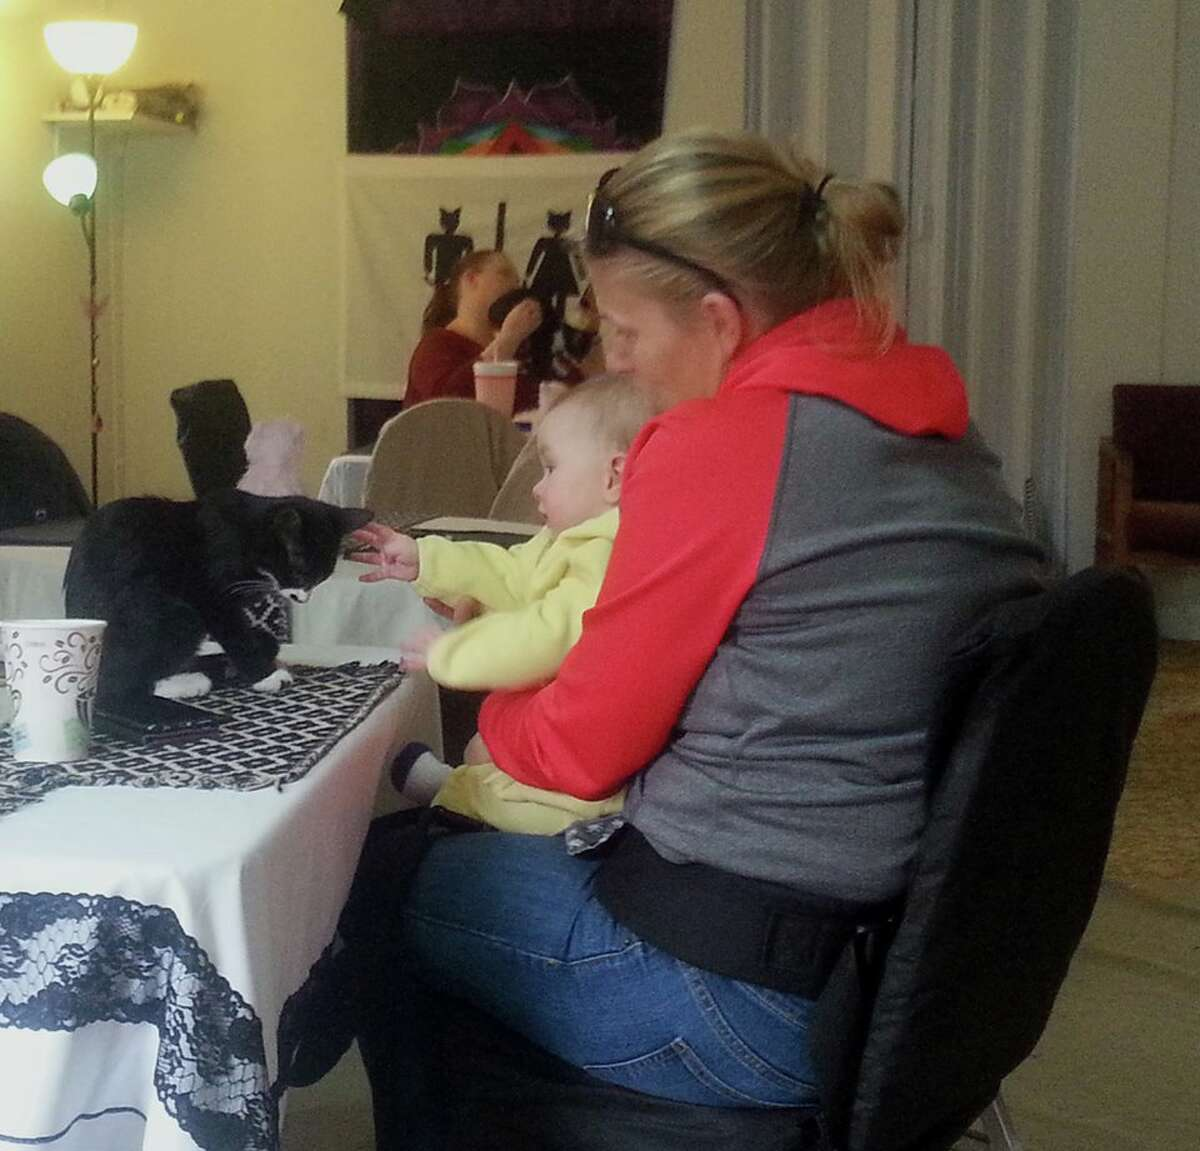 Operation Pets Alive created The Great Catsby to aid in the adoption of older cats who often have a difficult time finding a forever home. The next pop-up cat cafe will be on Feb. 11 and 12 from noon to 5 p.m. in Old Town Spring.